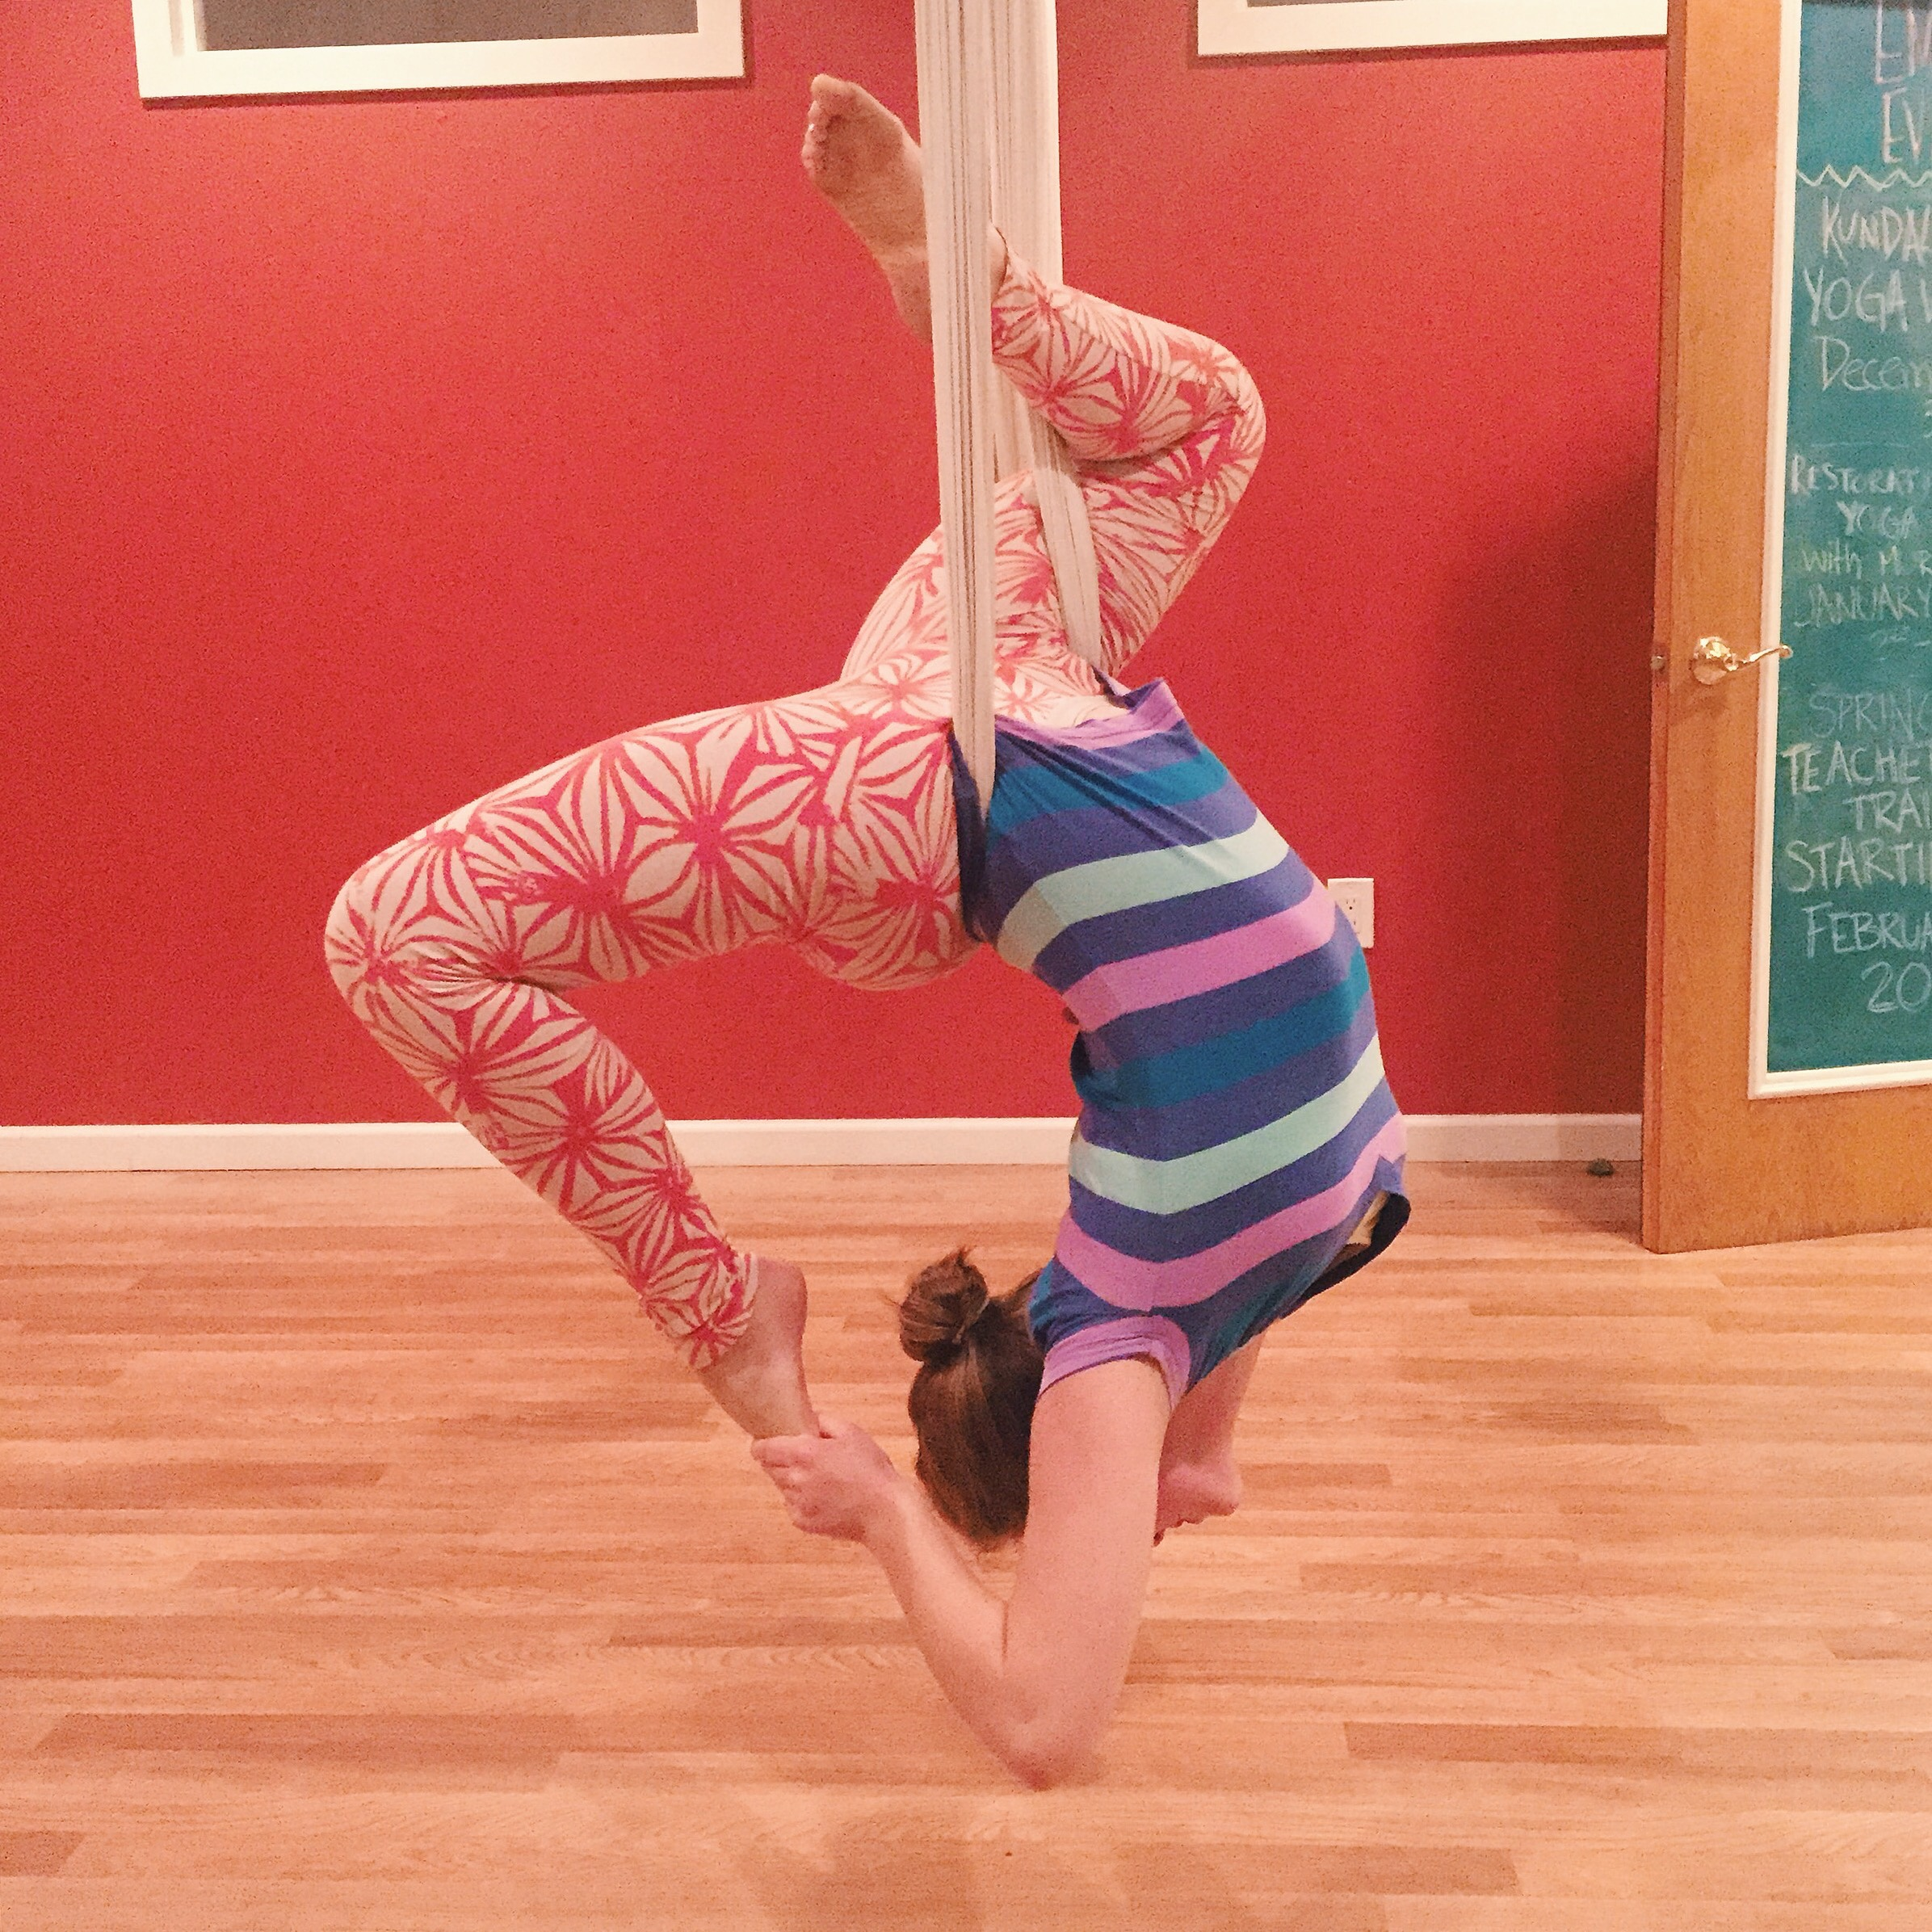 a version of myself in 2014, who would be horrified to know that in the future I would have a change of priorities that would take a way a good chunk of my back flexibility